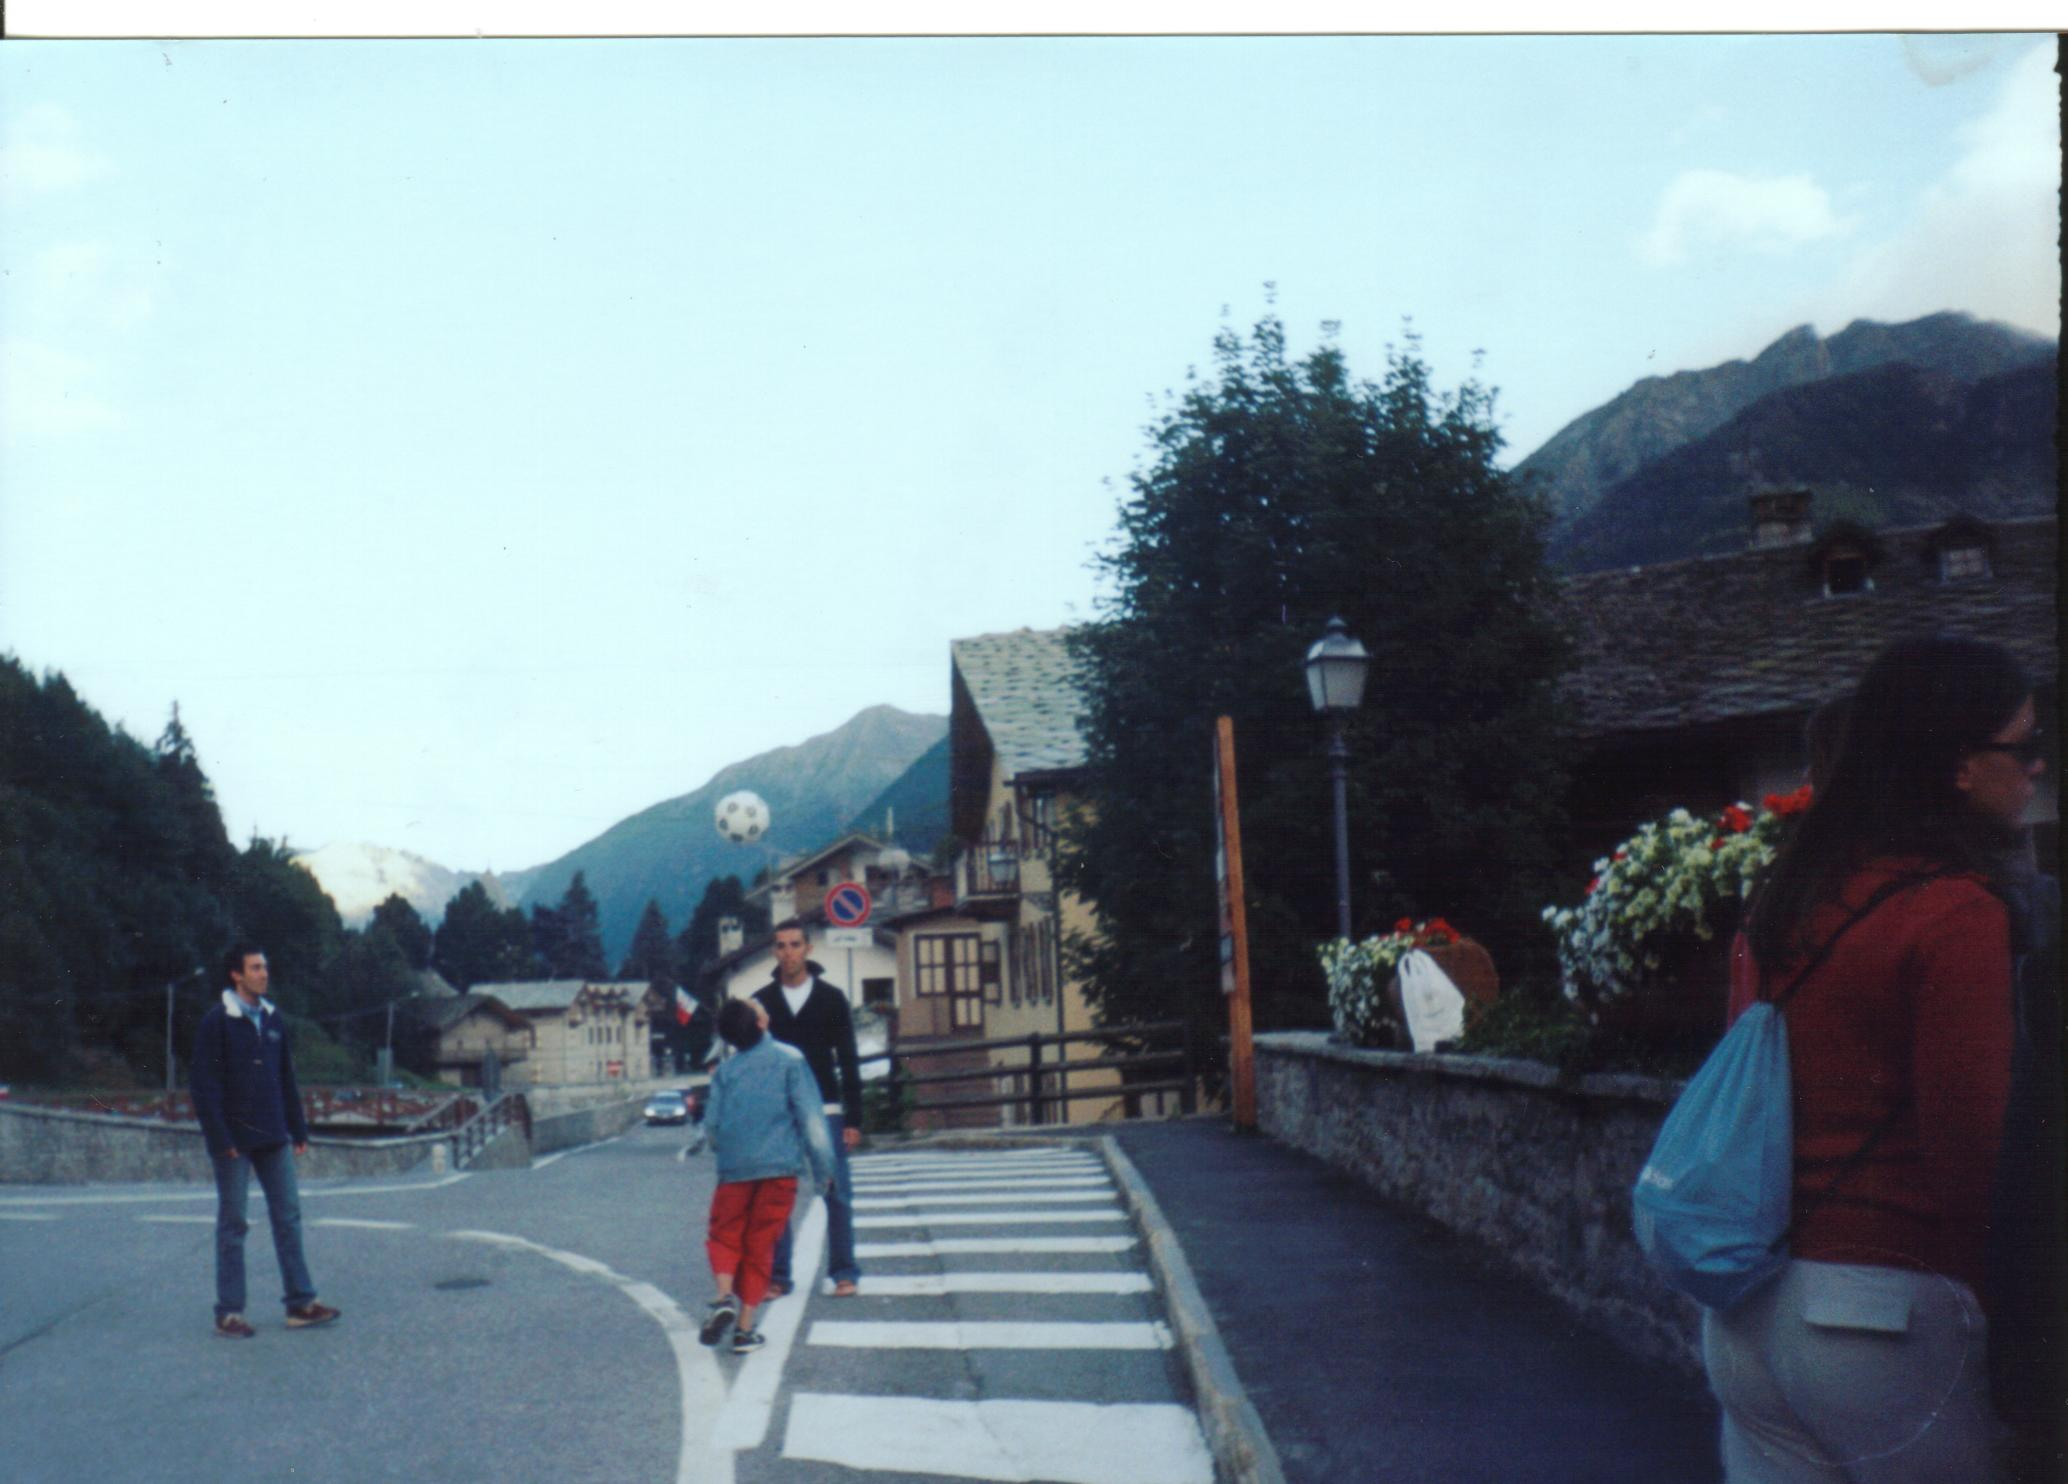 St.Jean-gressoney.JPG